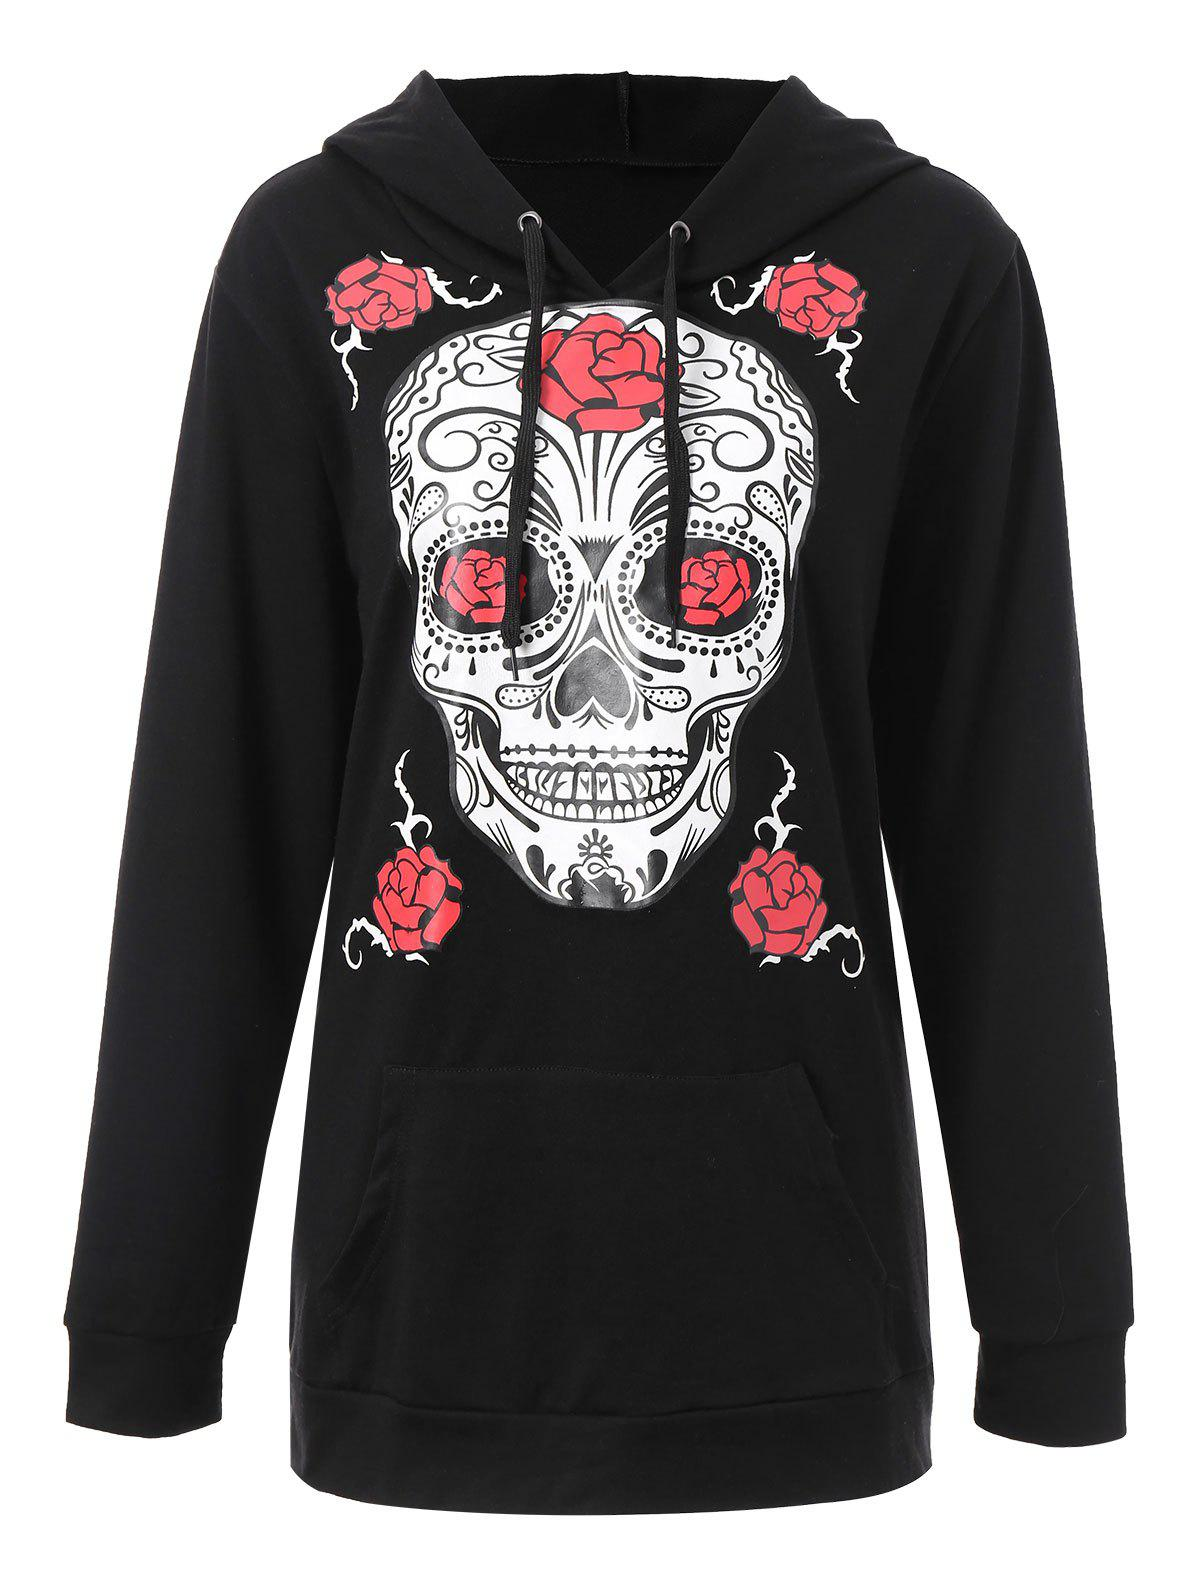 Plus Size Halloween Floral Skull Graphic HoodieWOMEN<br><br>Size: 2XL; Color: BLACK; Material: Cotton Blend,Polyester; Shirt Length: Regular; Sleeve Length: Full; Style: Fashion; Pattern Style: Floral,Skulls; Embellishment: Front Pocket; Season: Fall,Winter; Weight: 0.5300kg; Package Contents: 1 x Hoodie;